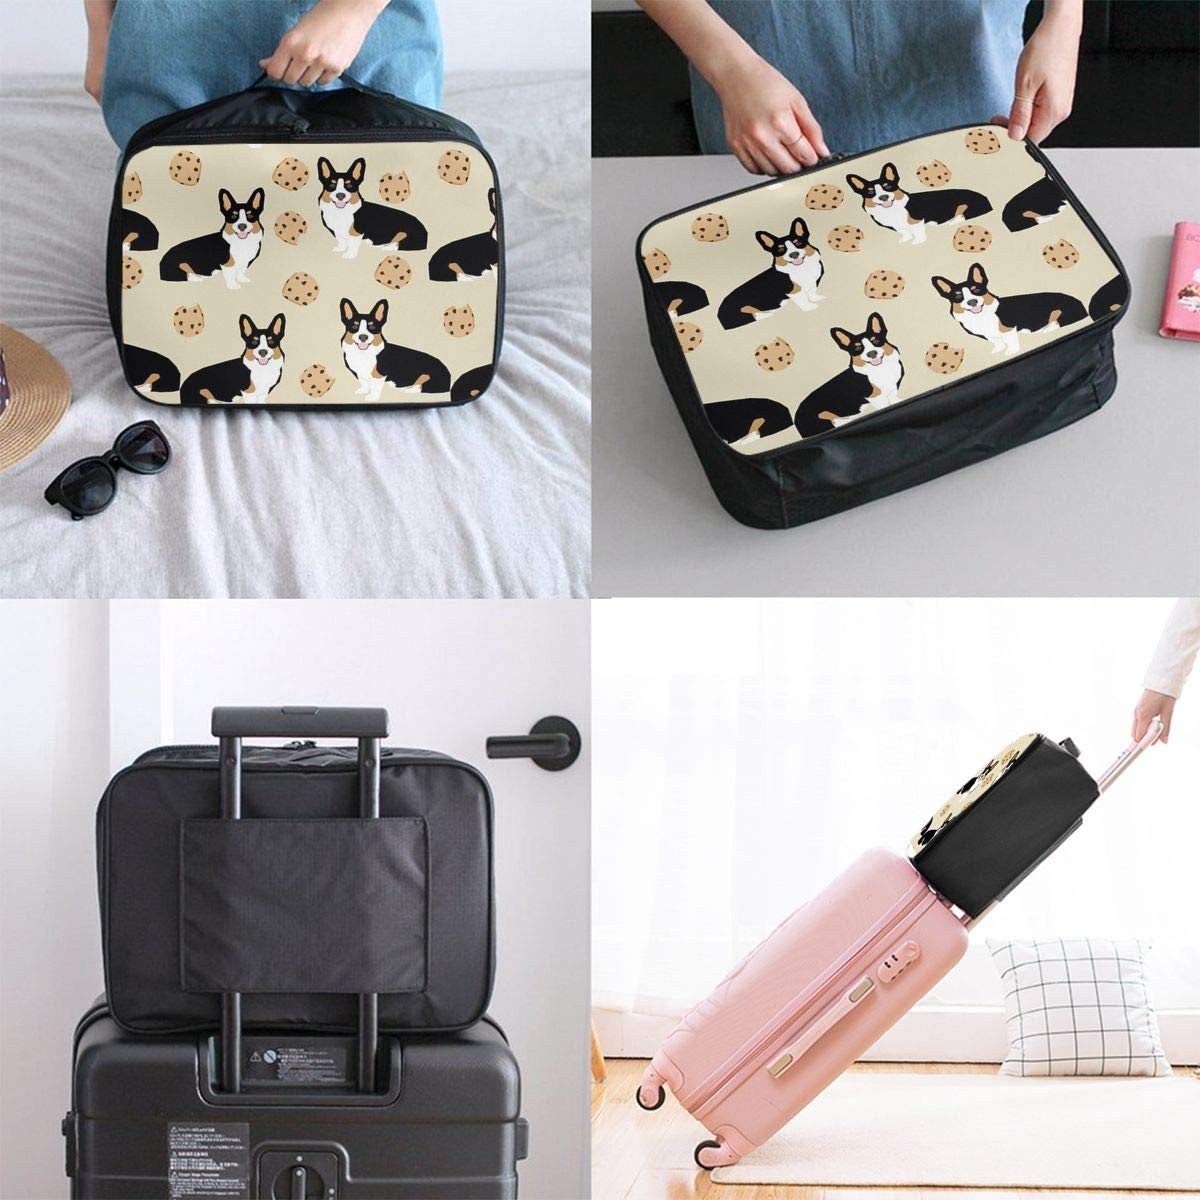 JTRVW Luggage Bags for Travel Funny Corgi Dogs Cookies Travel Lightweight Waterproof Foldable Storage Carry Luggage Duffle Tote Bag